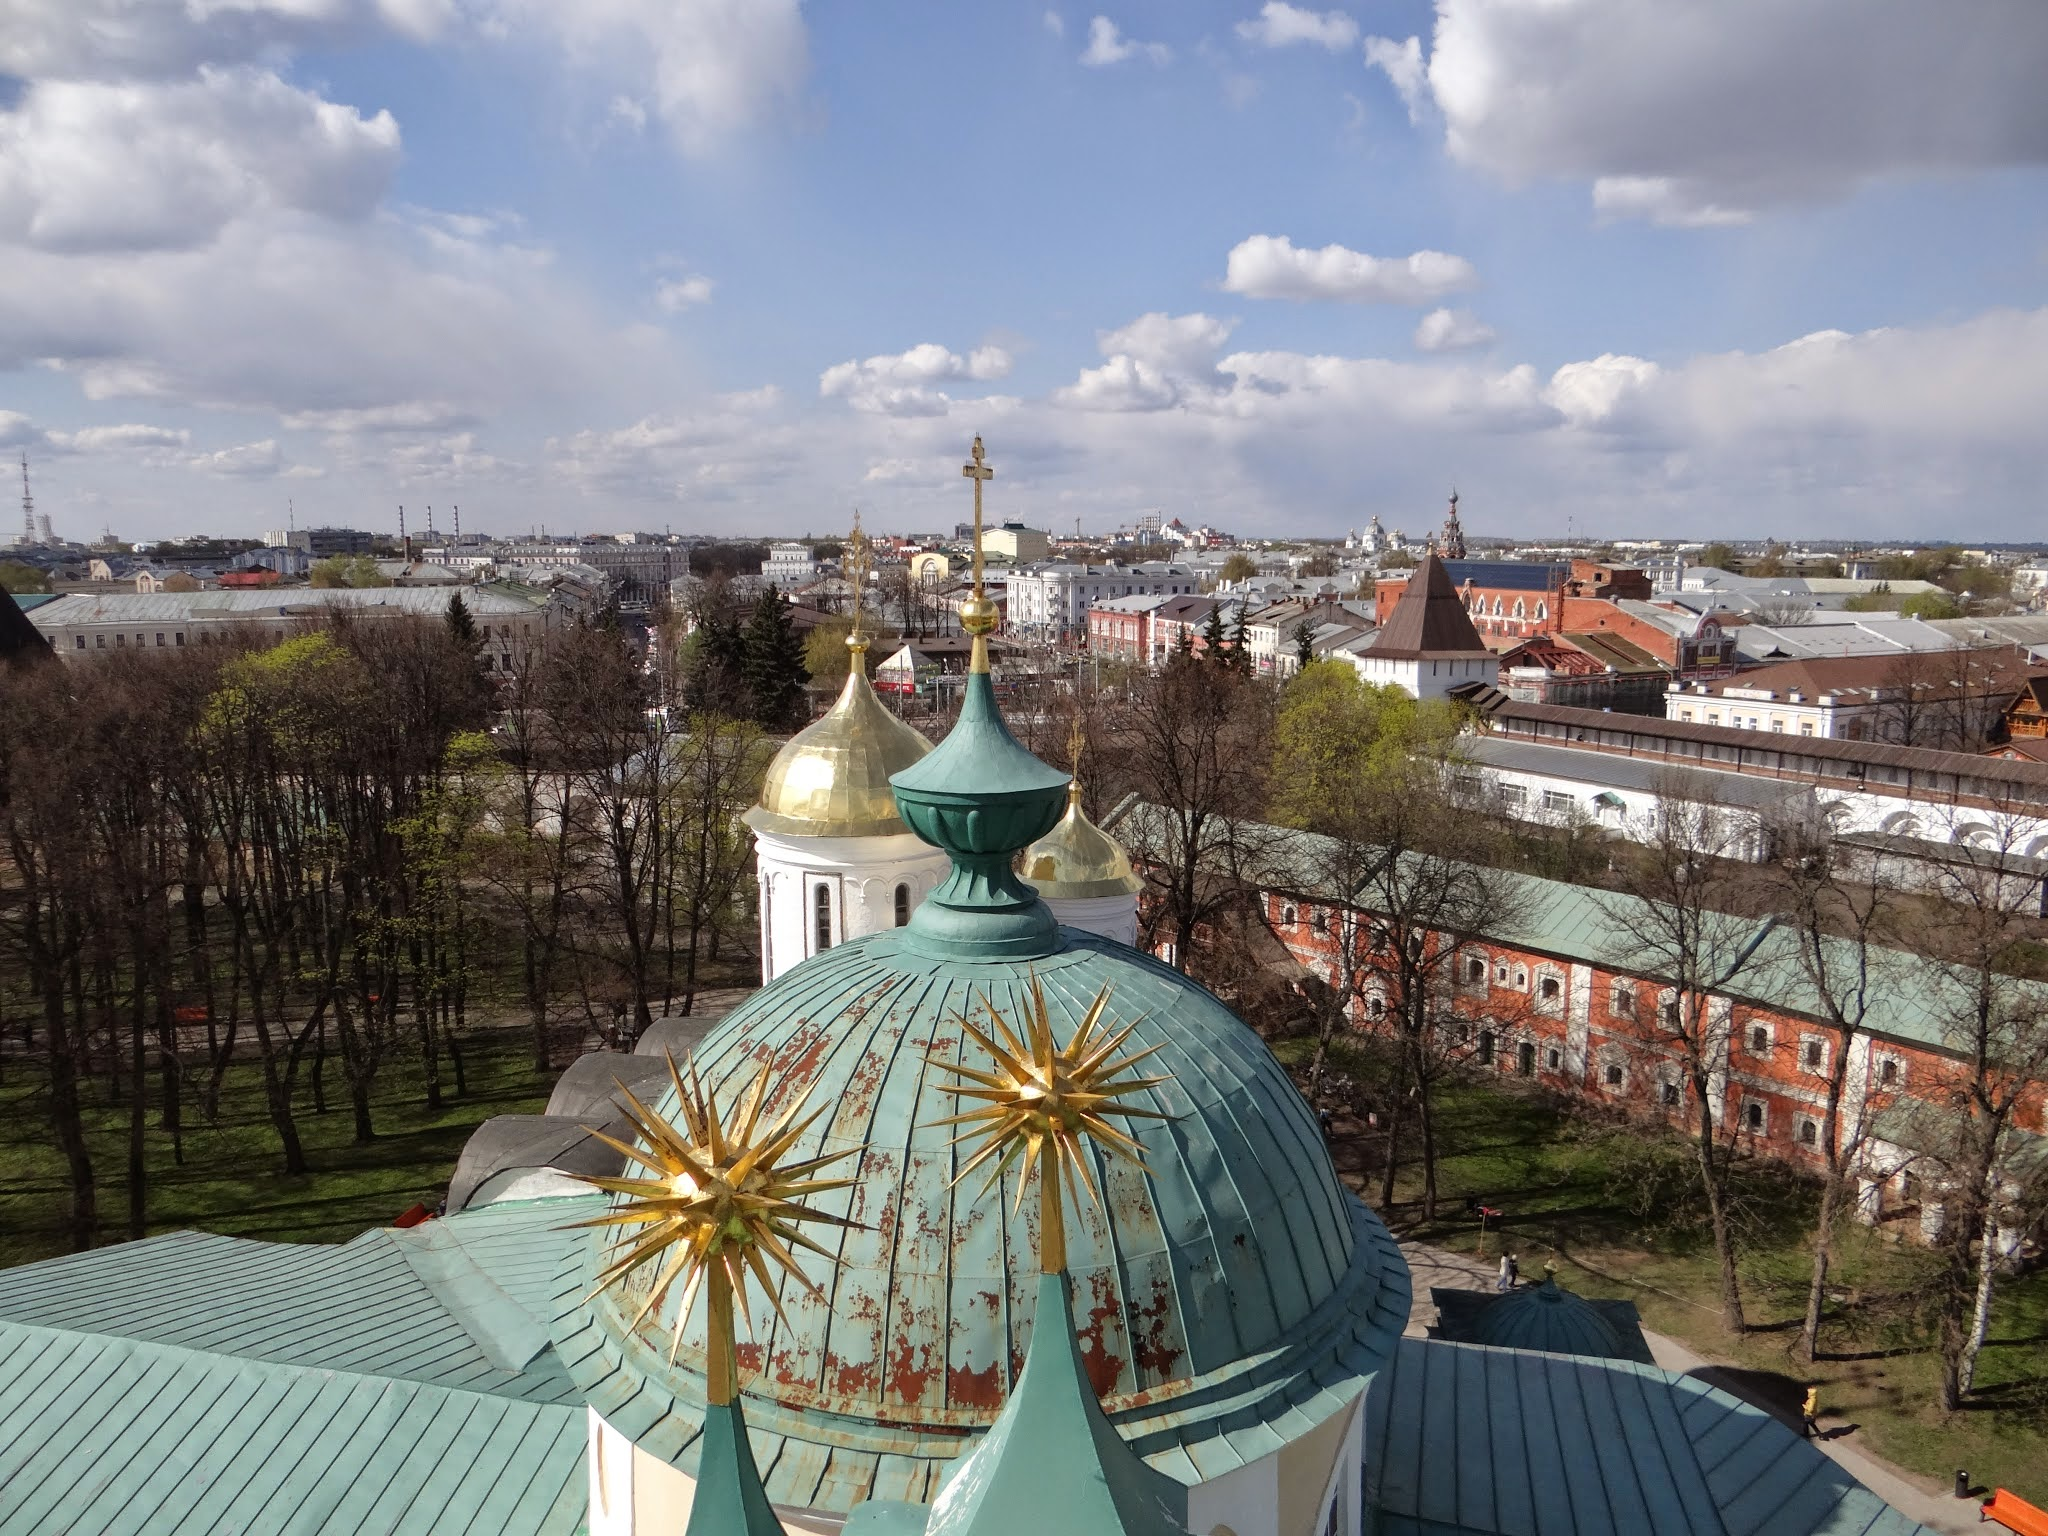 The modern city of Yaroslavl in the background